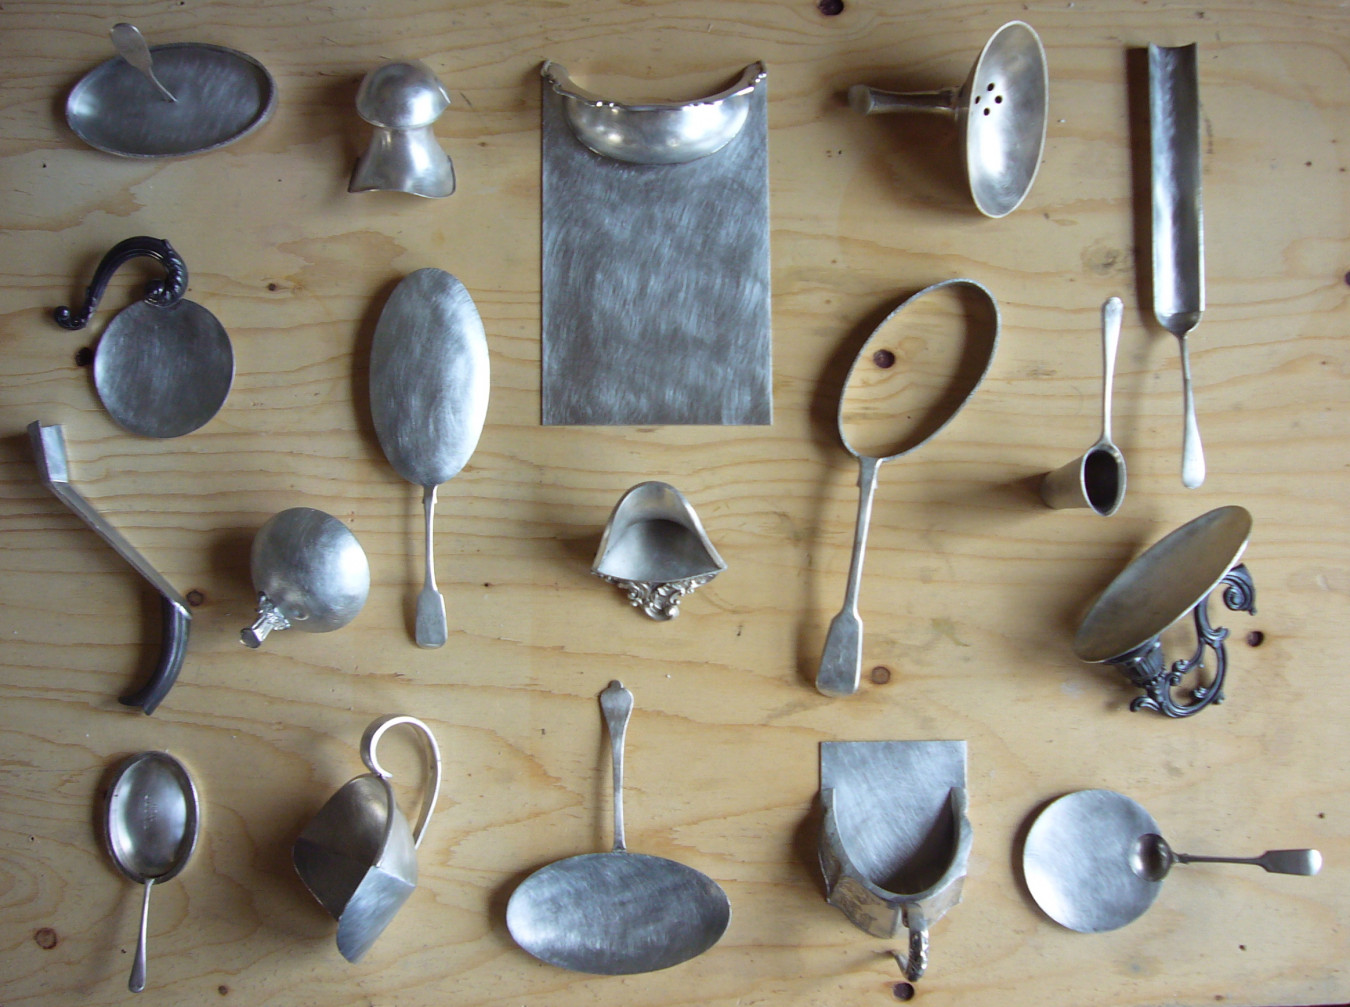 Image of the first series of spoons playing with form and function